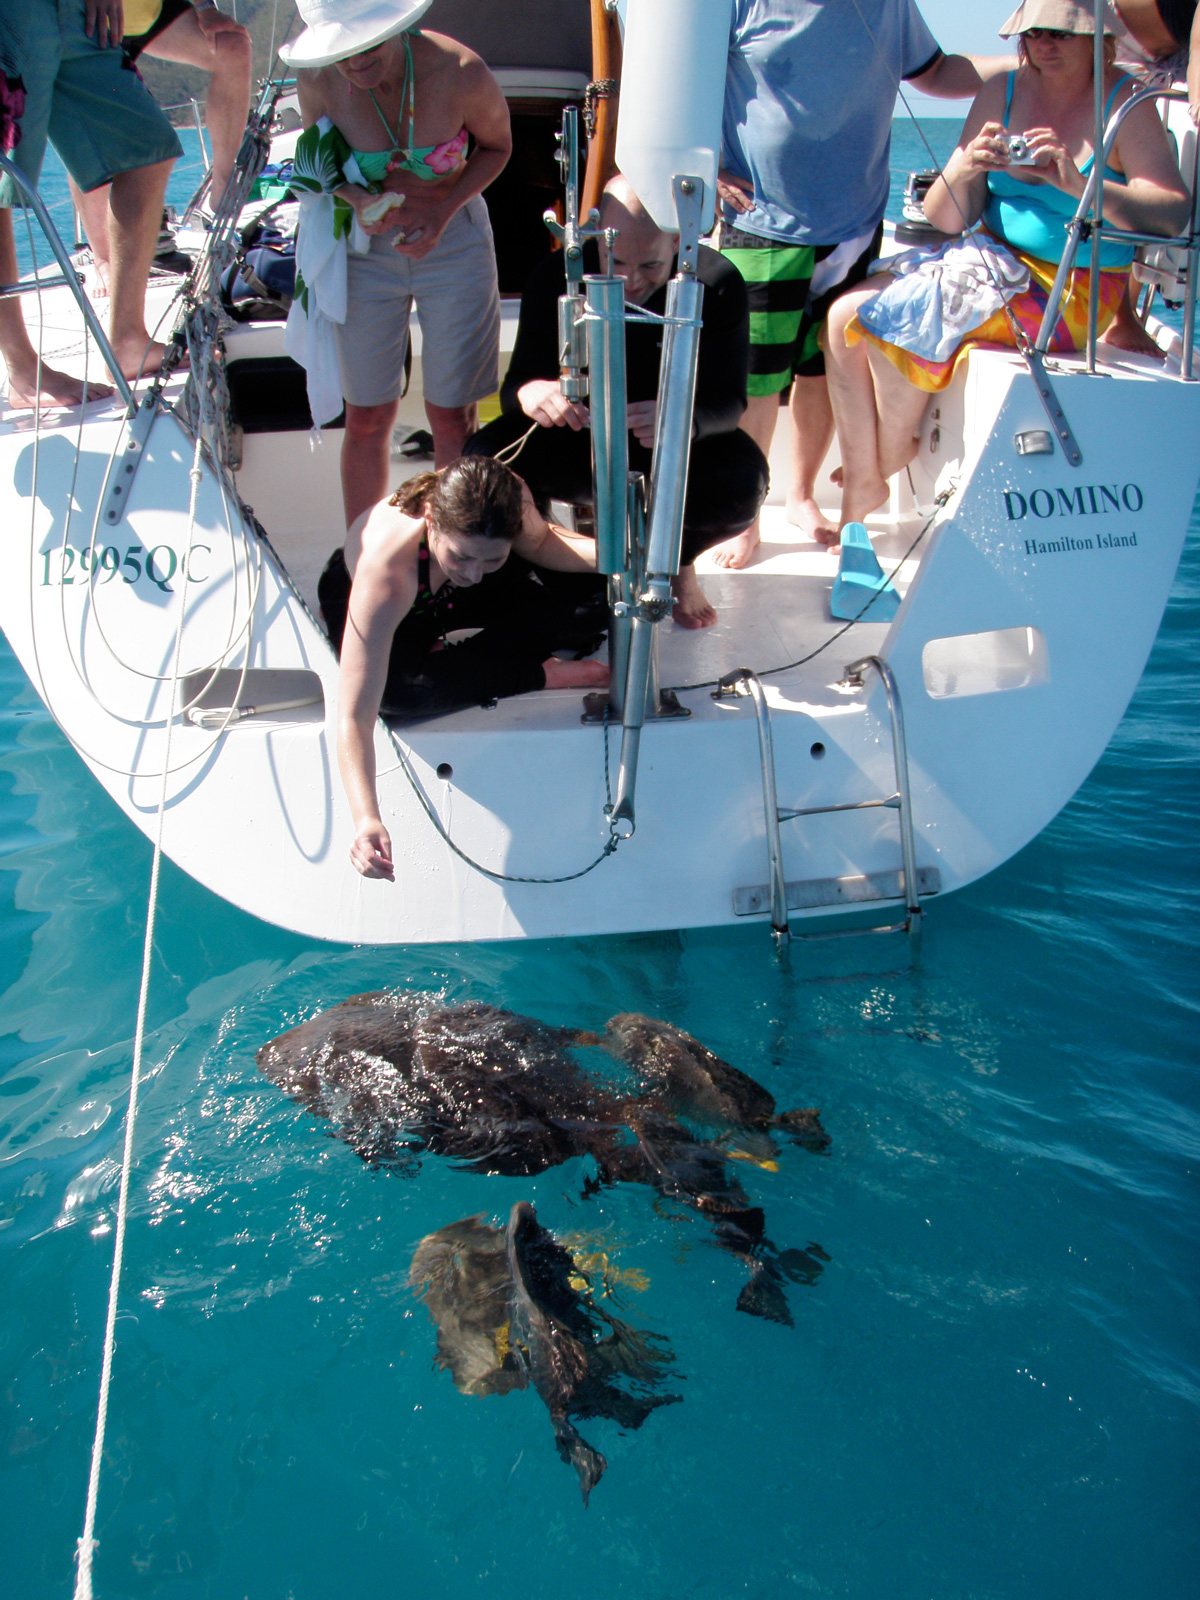 SV Domino turtles off the aft deck